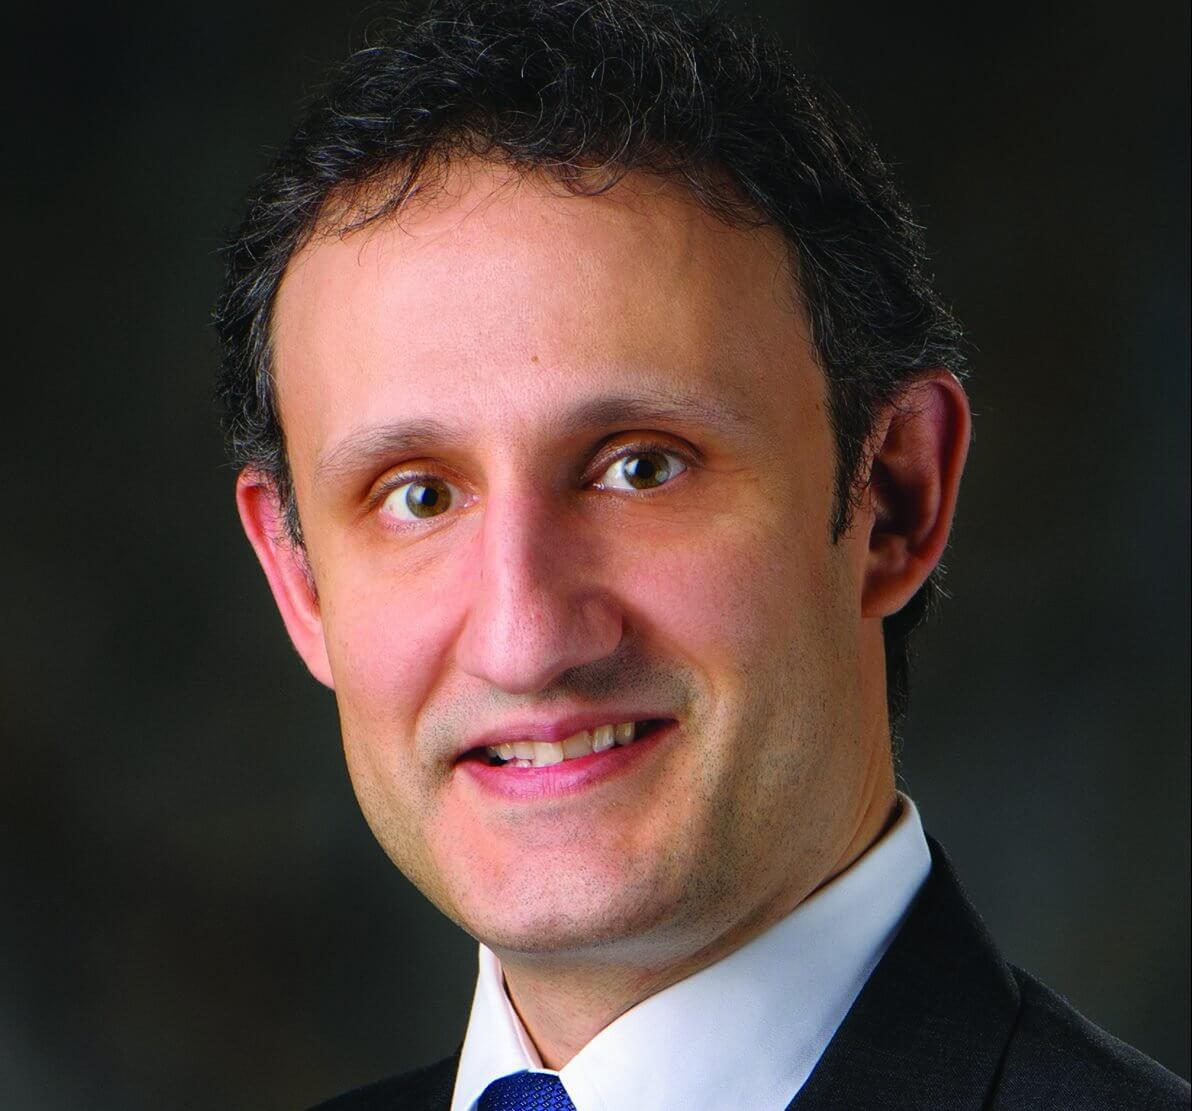 George Pisimisis, M.D., associate professor of thoracic and cardiovascular surgery at MD Anderson.